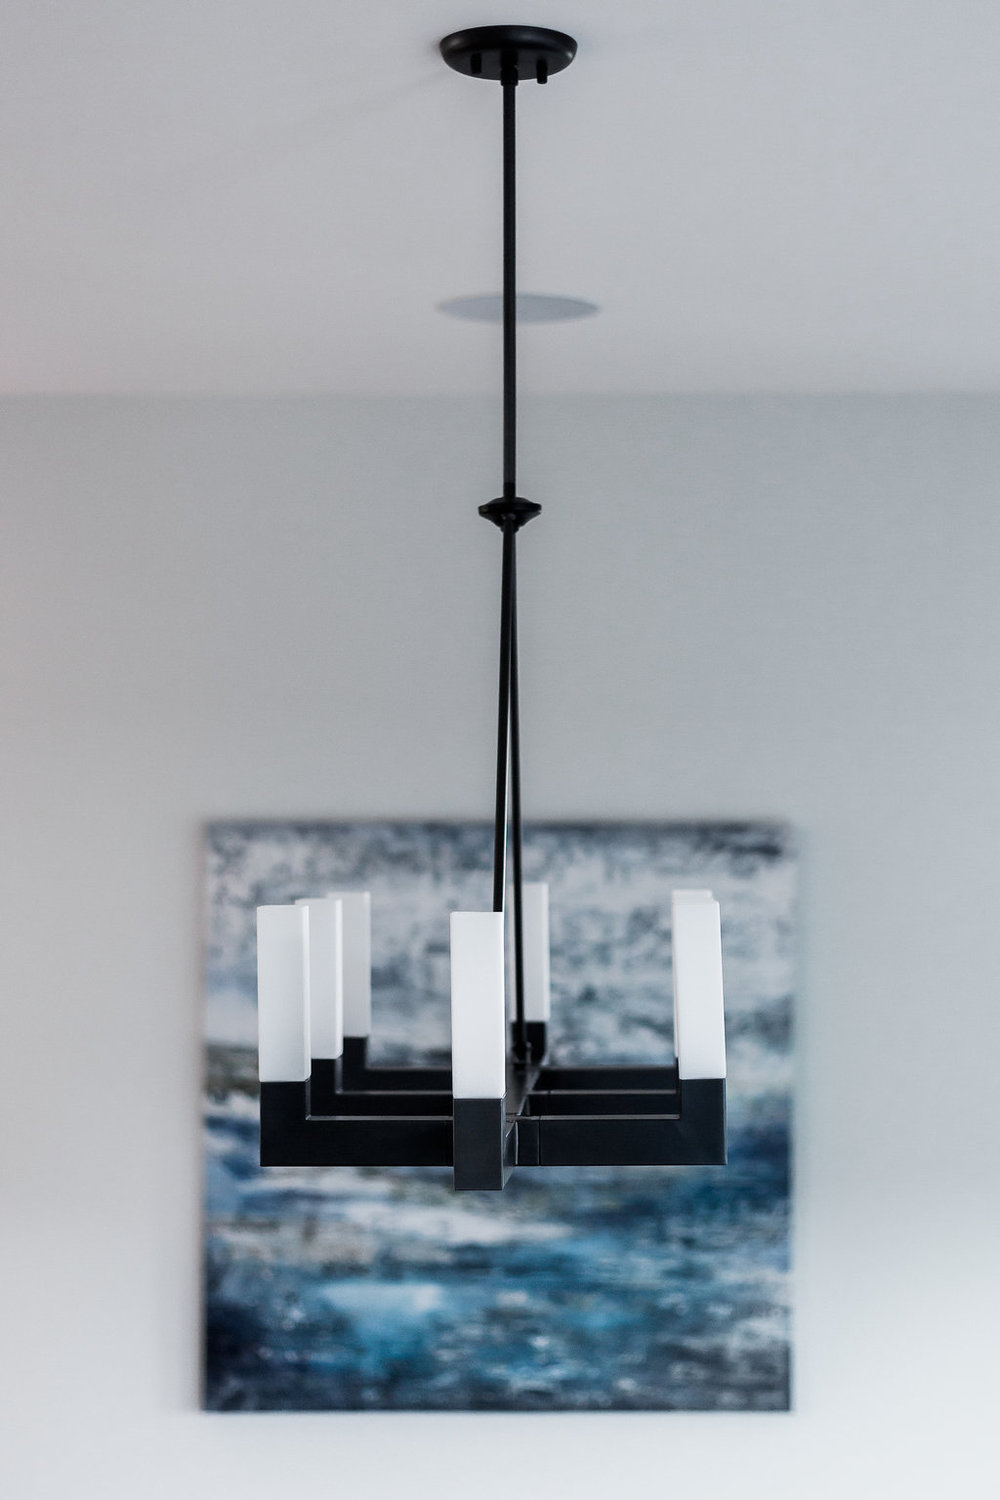 Calgary Modern Interior Design Dining Room Light.jpg